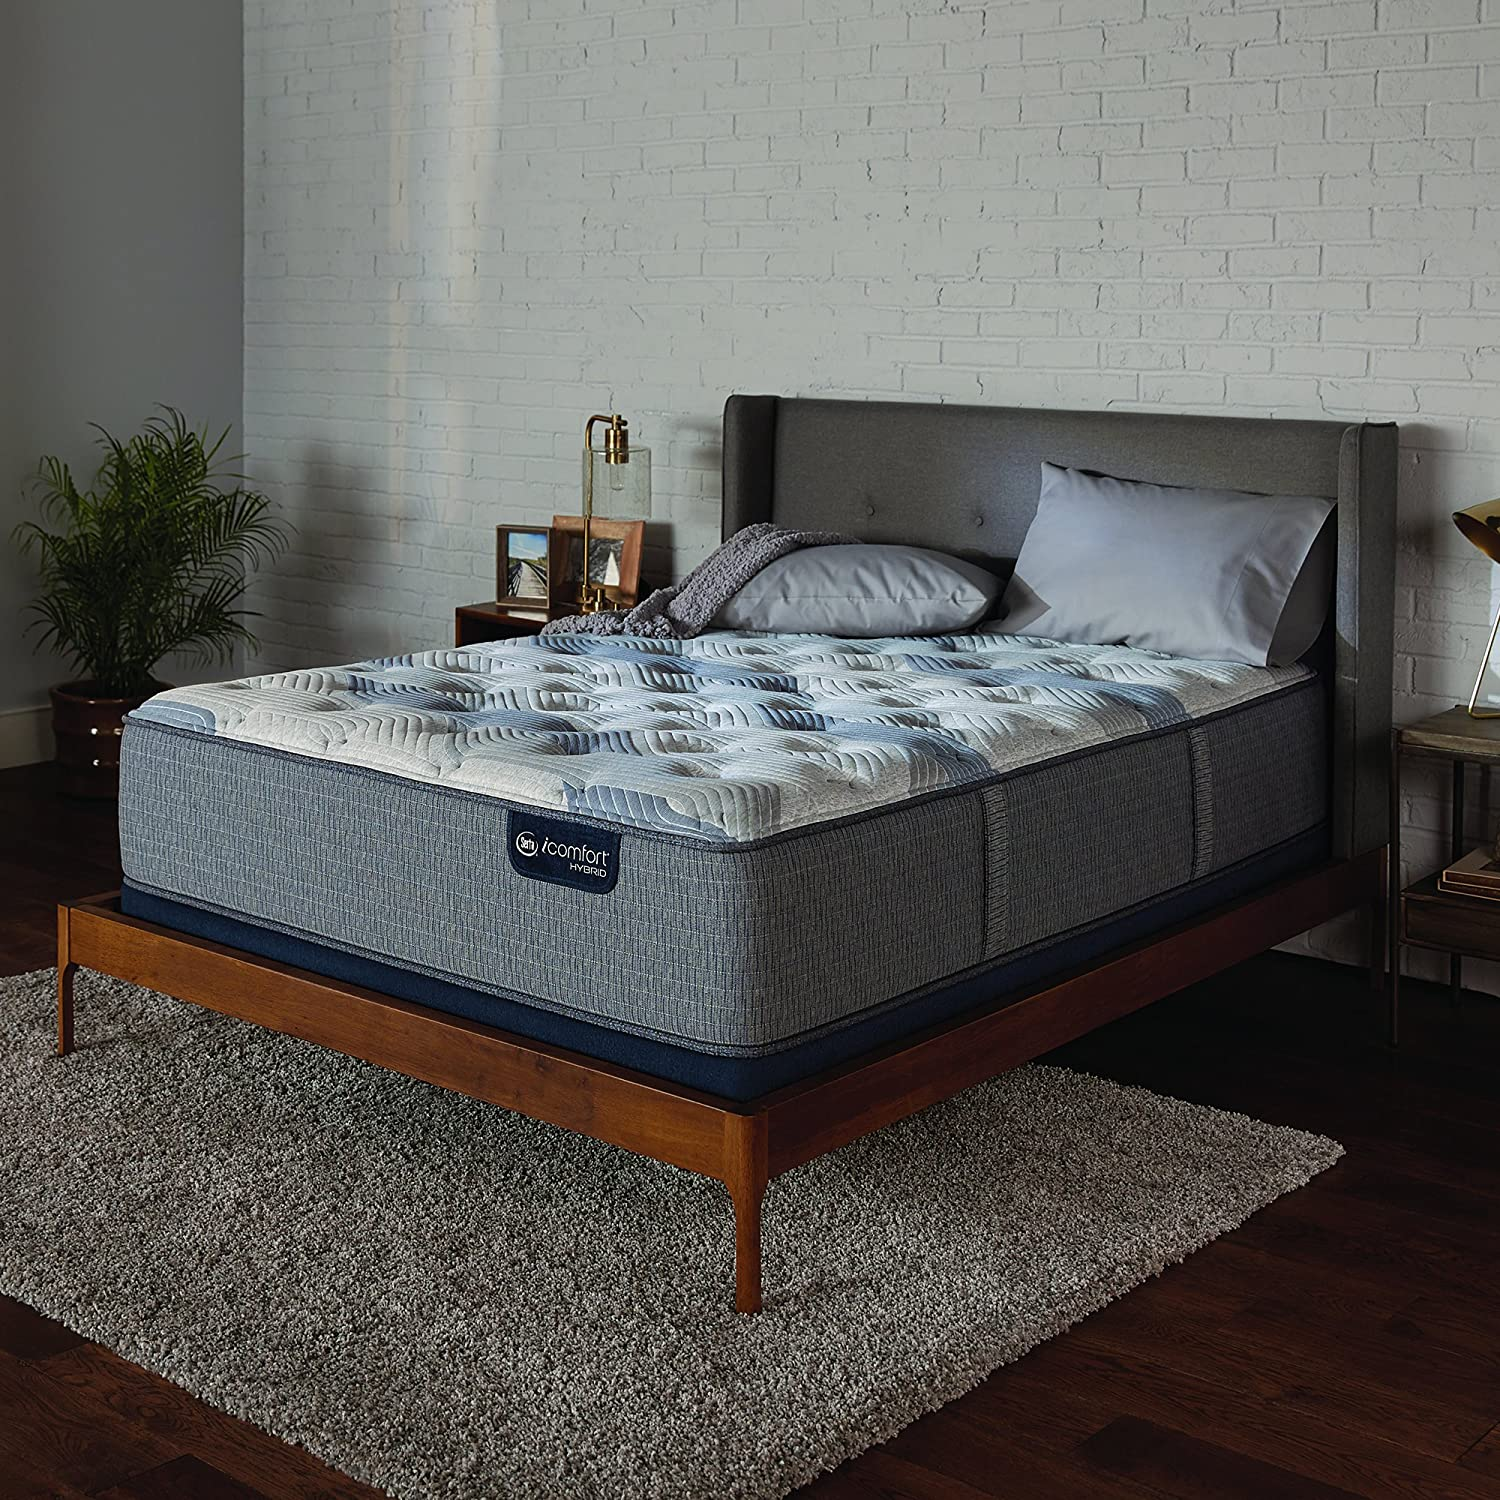 Jacia House 12 Inch Pillow-Top Innerspring Hybrid Mattress – Bed in a Box – Luxury Bed Foam Latex Double Hybrid Mattress Queen